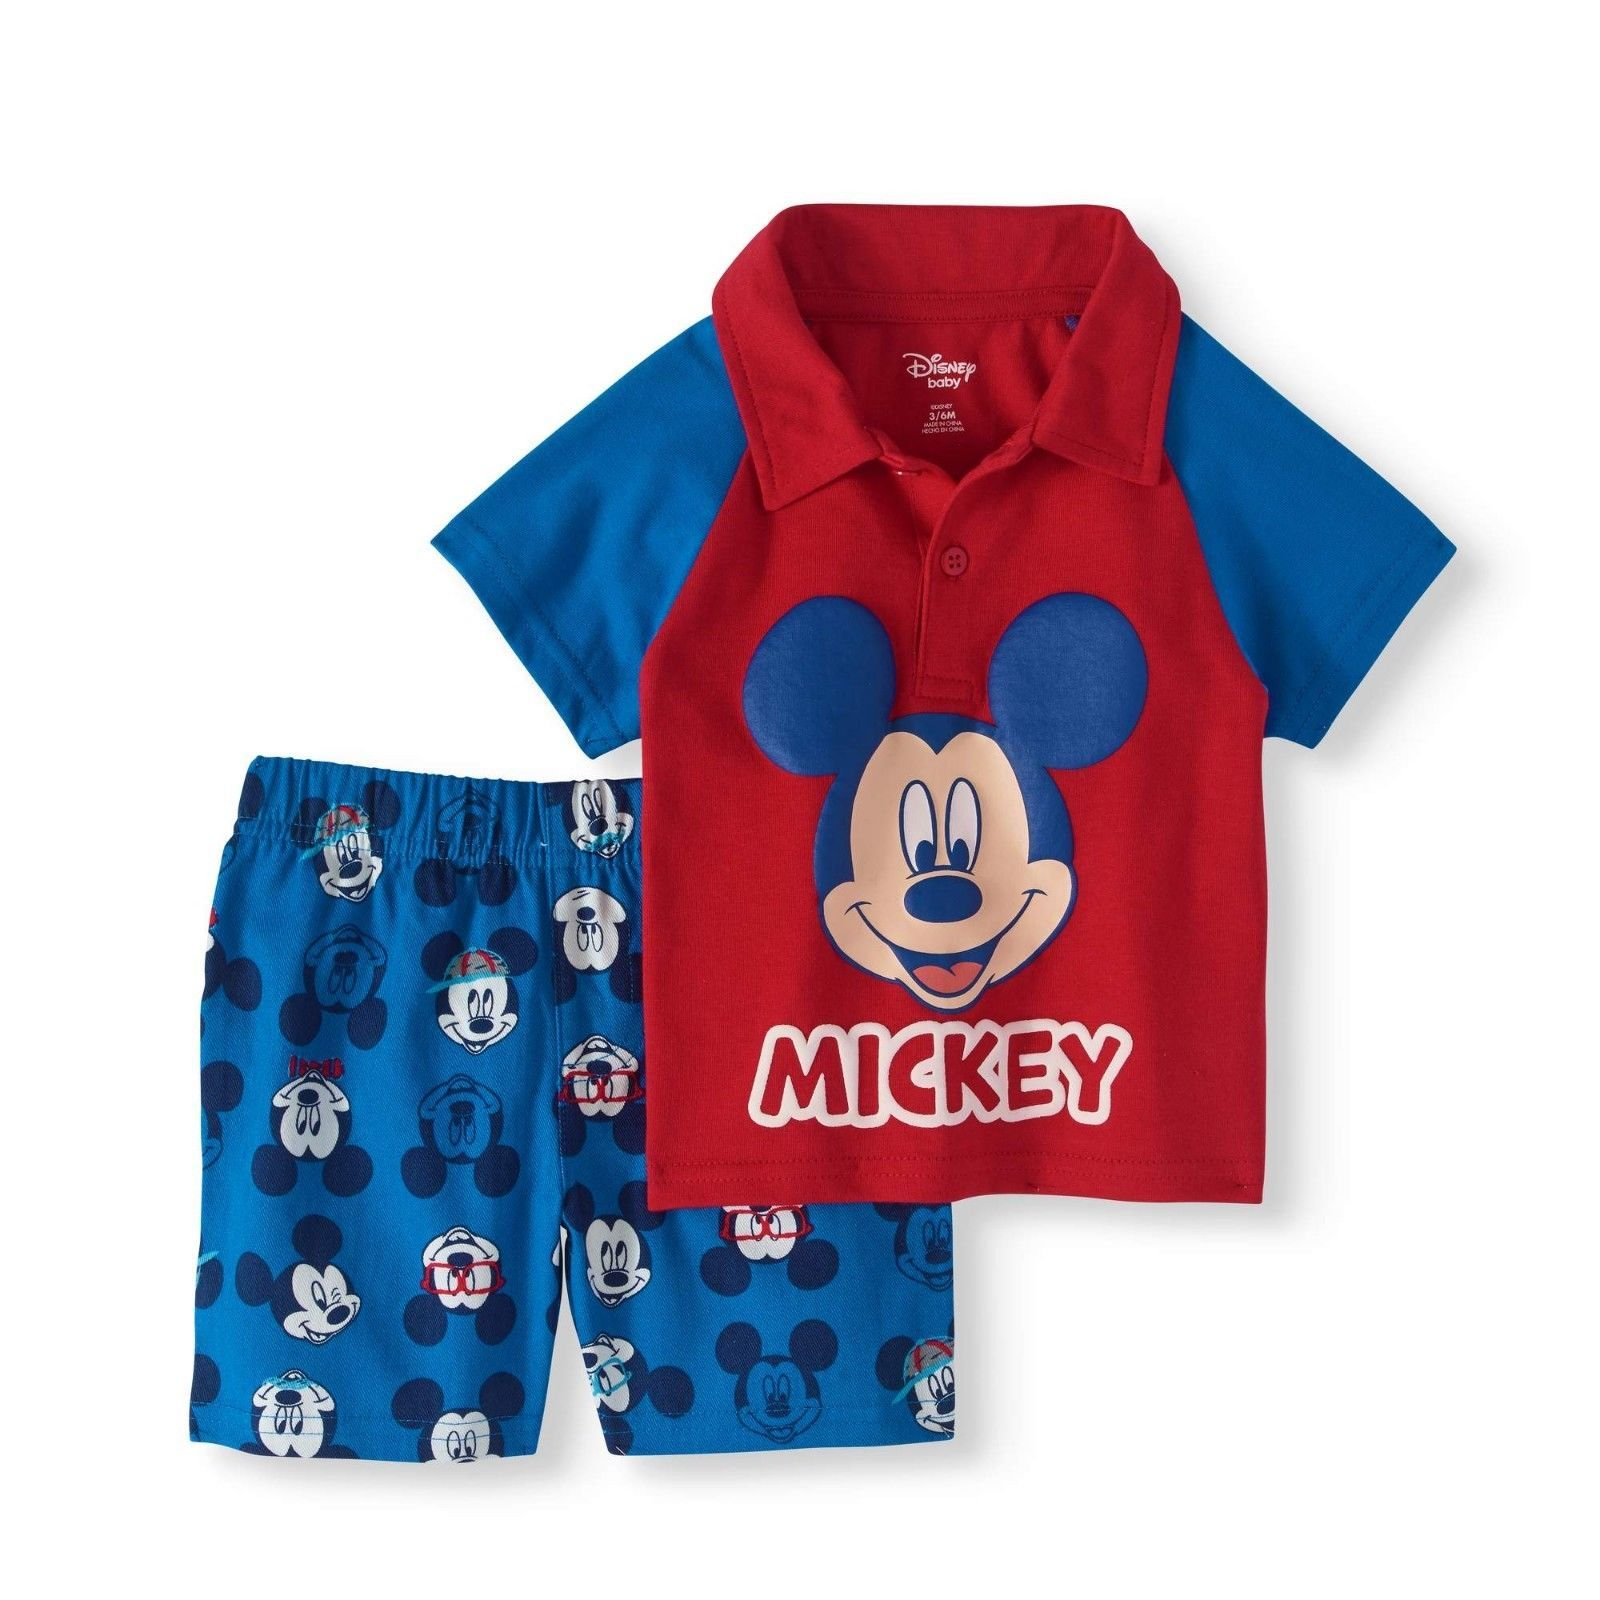 db3f24231 Disney Baby Mickey Mouse Infant Boys 0-3M 2 and 45 similar items. 57